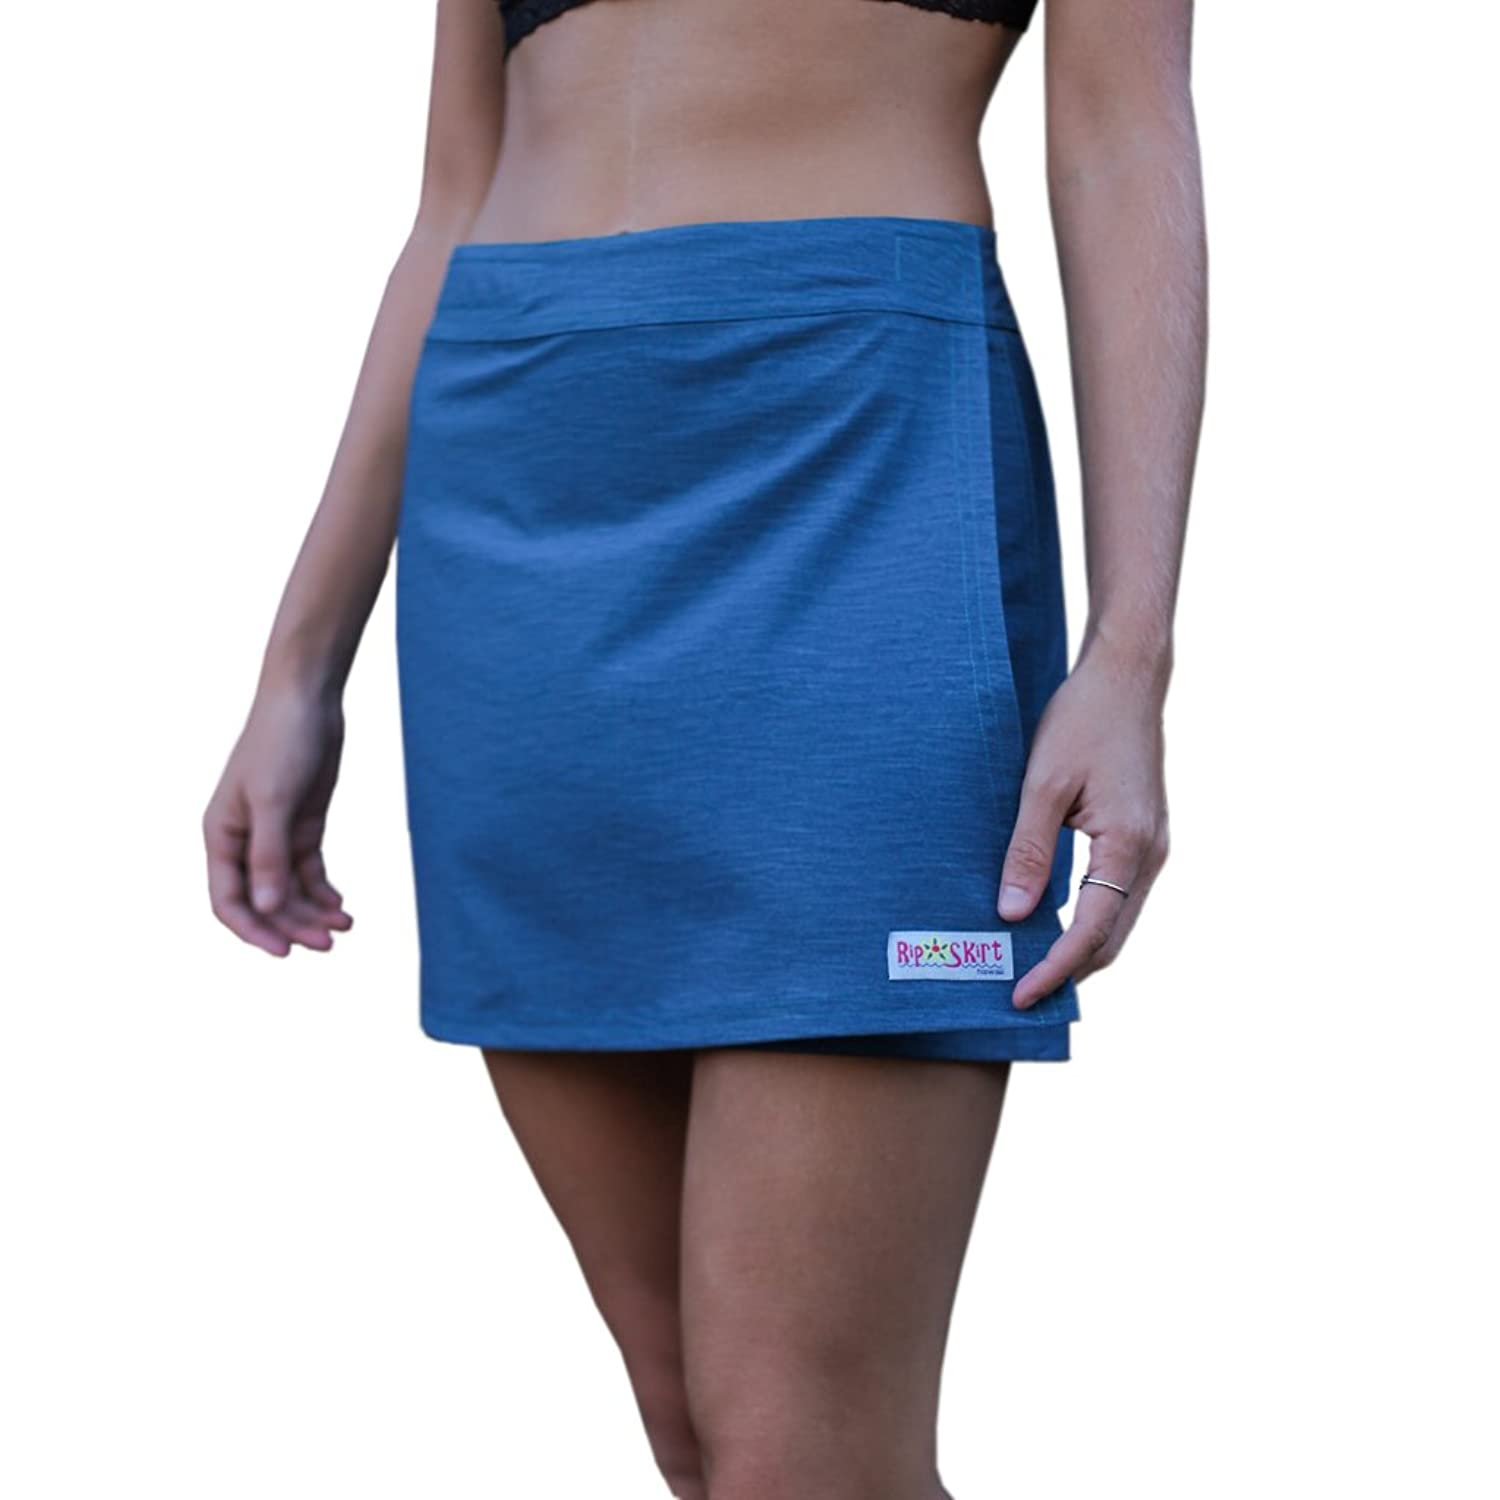 ce6e36d3bd RipSkirt Hawaii - Length 1 - Quick Wrap Athletic Cover-up that Multitasks  as the